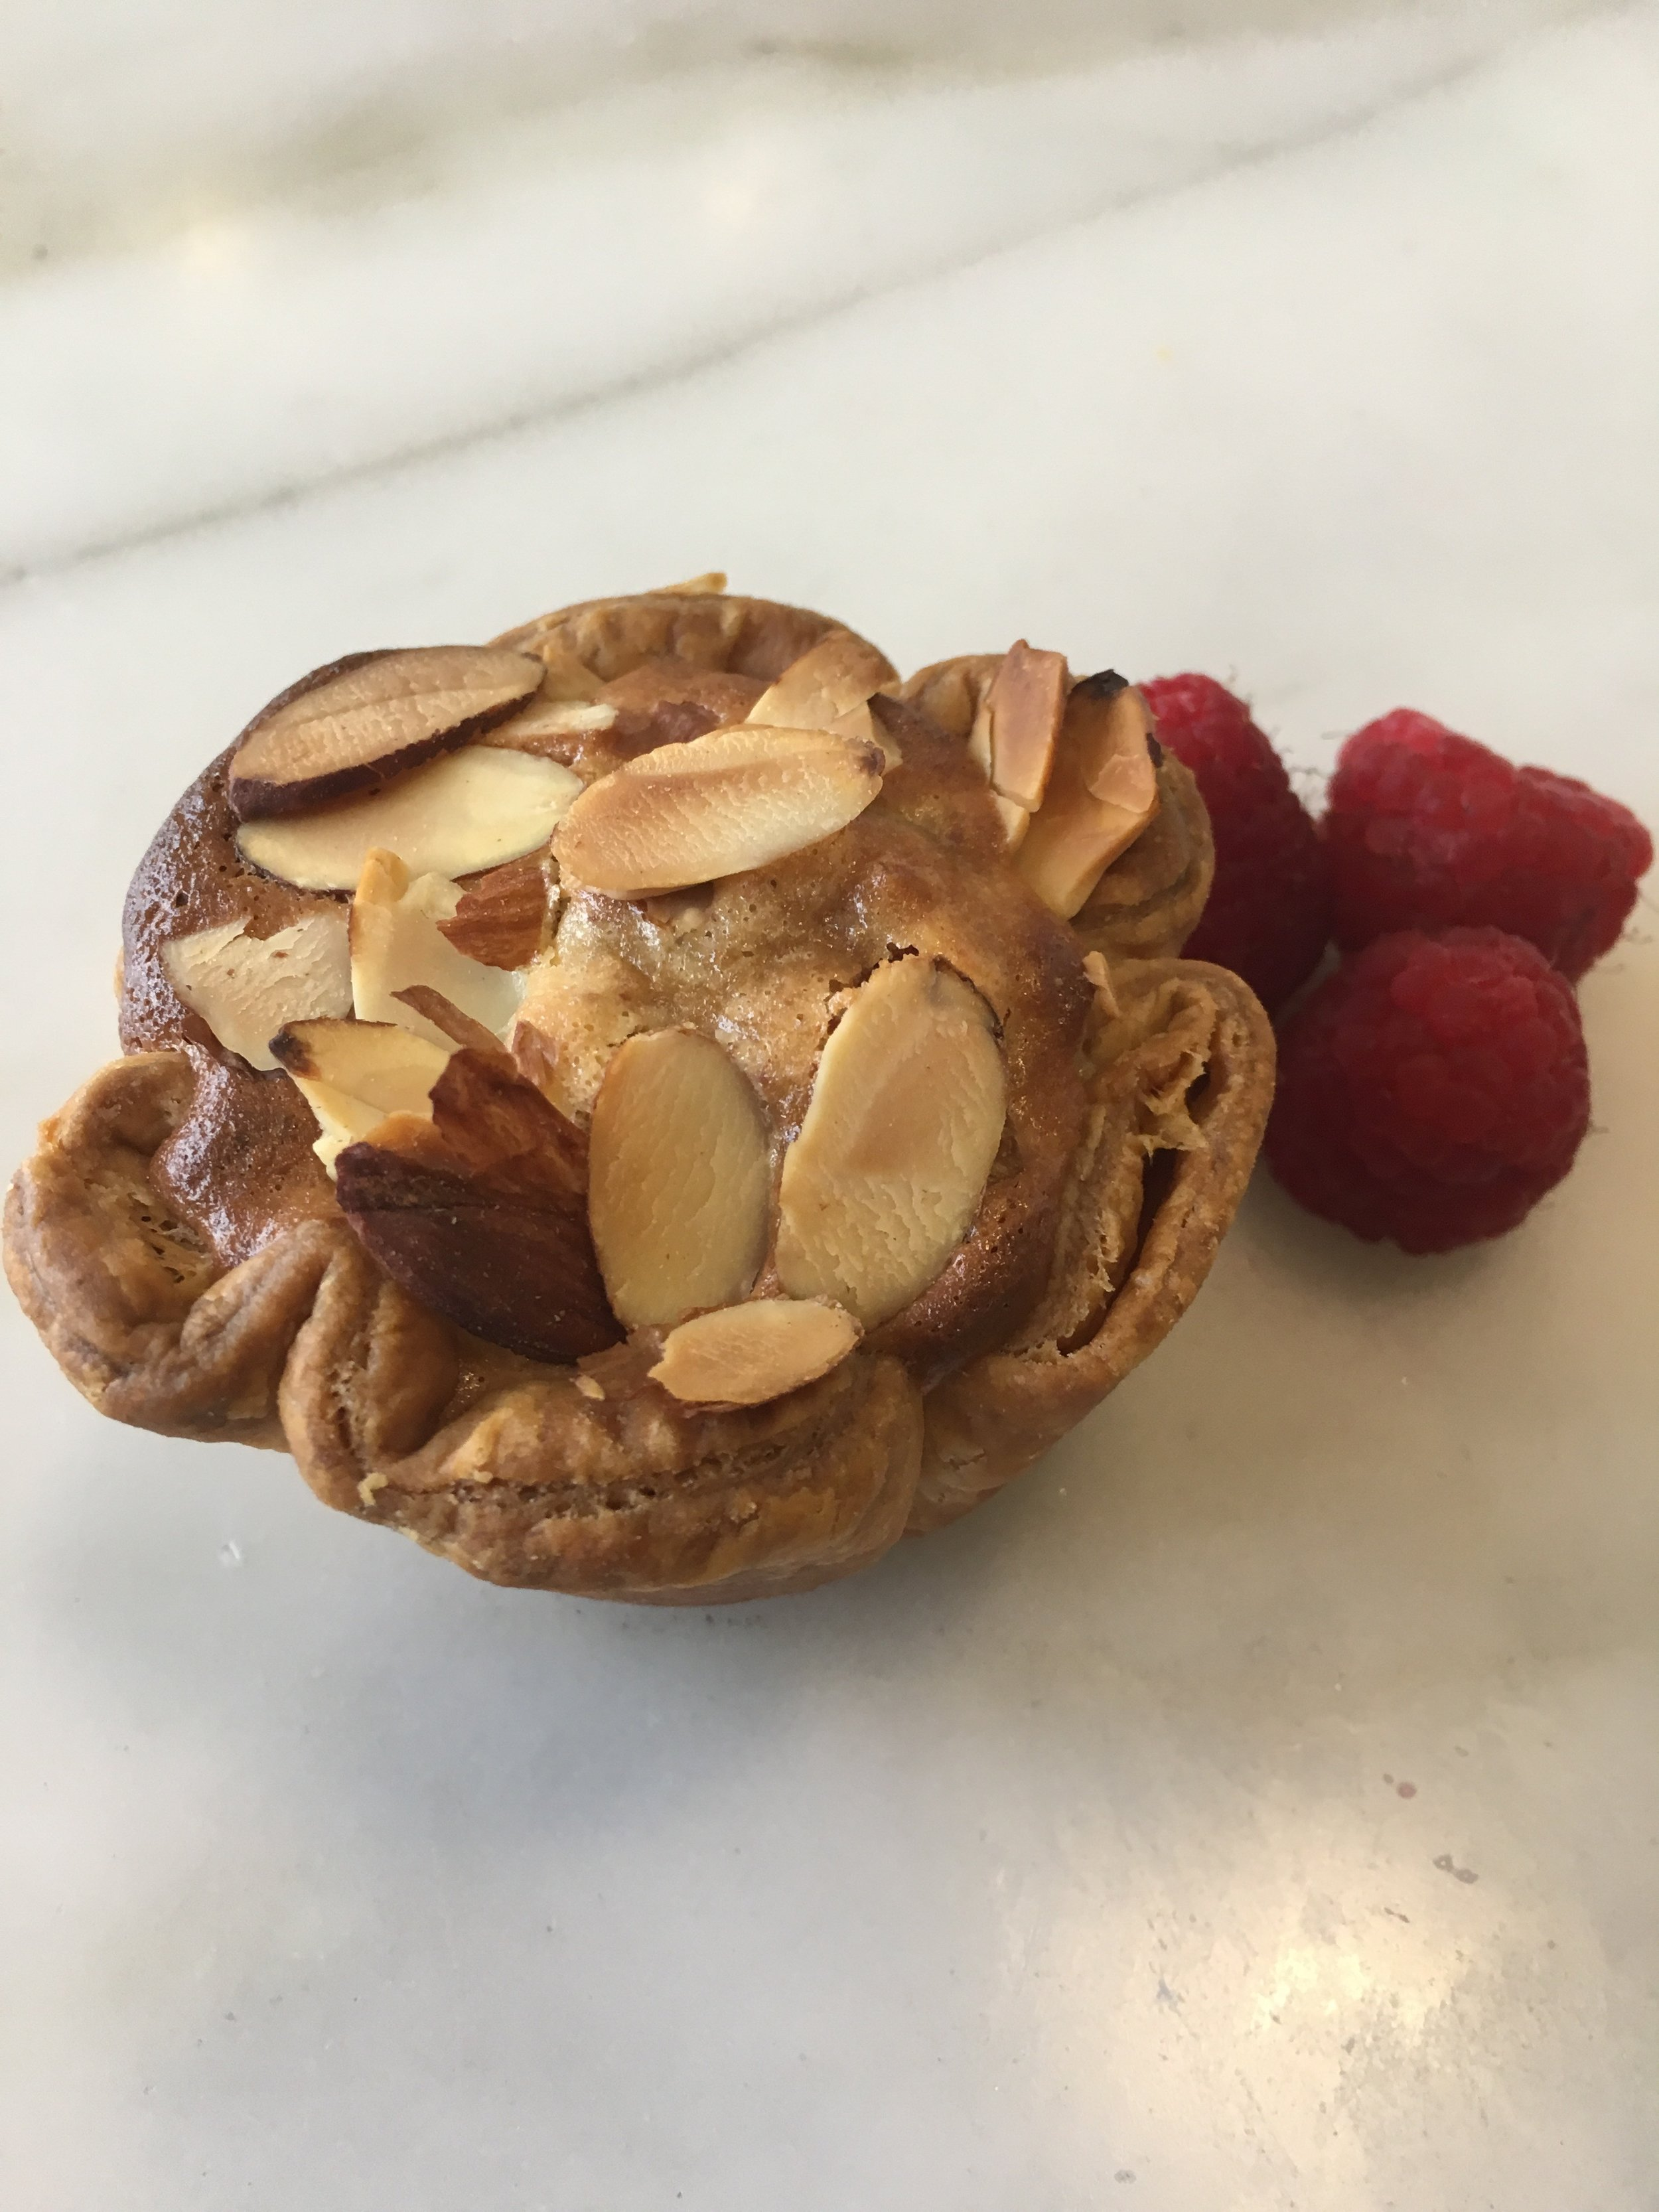 March's Pie of the Month, Raspberry Almond